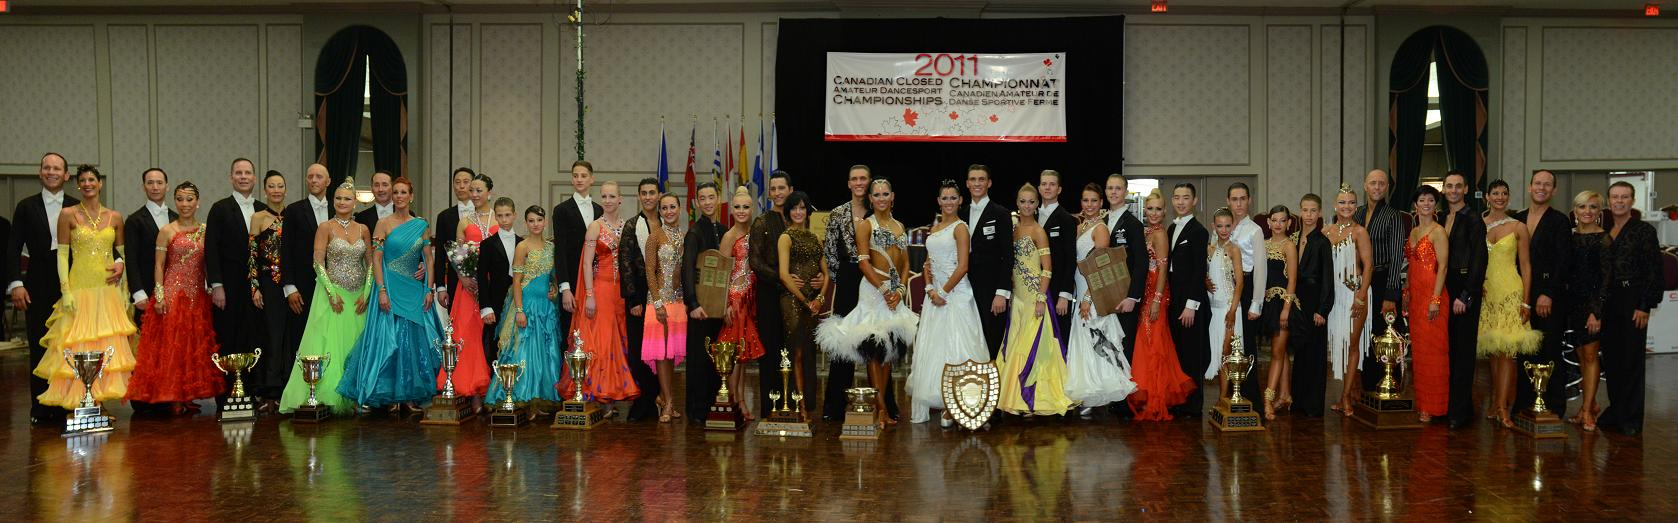 2011 Canadian Closed Competition <br>